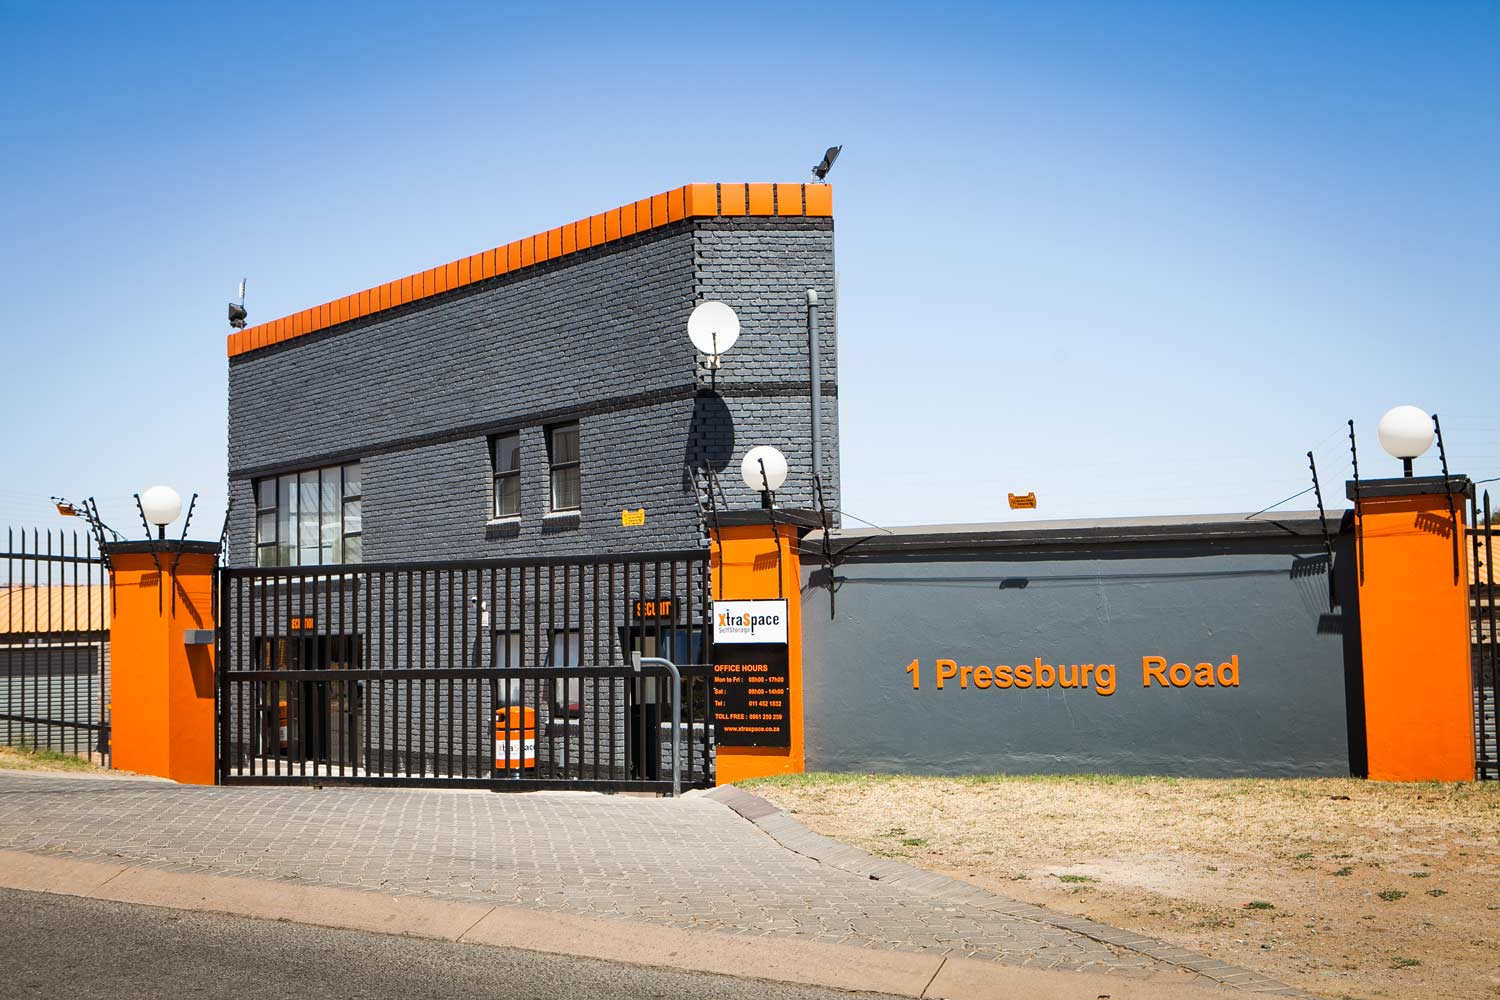 Street view of the XtraSpace Edenvale North storage facility